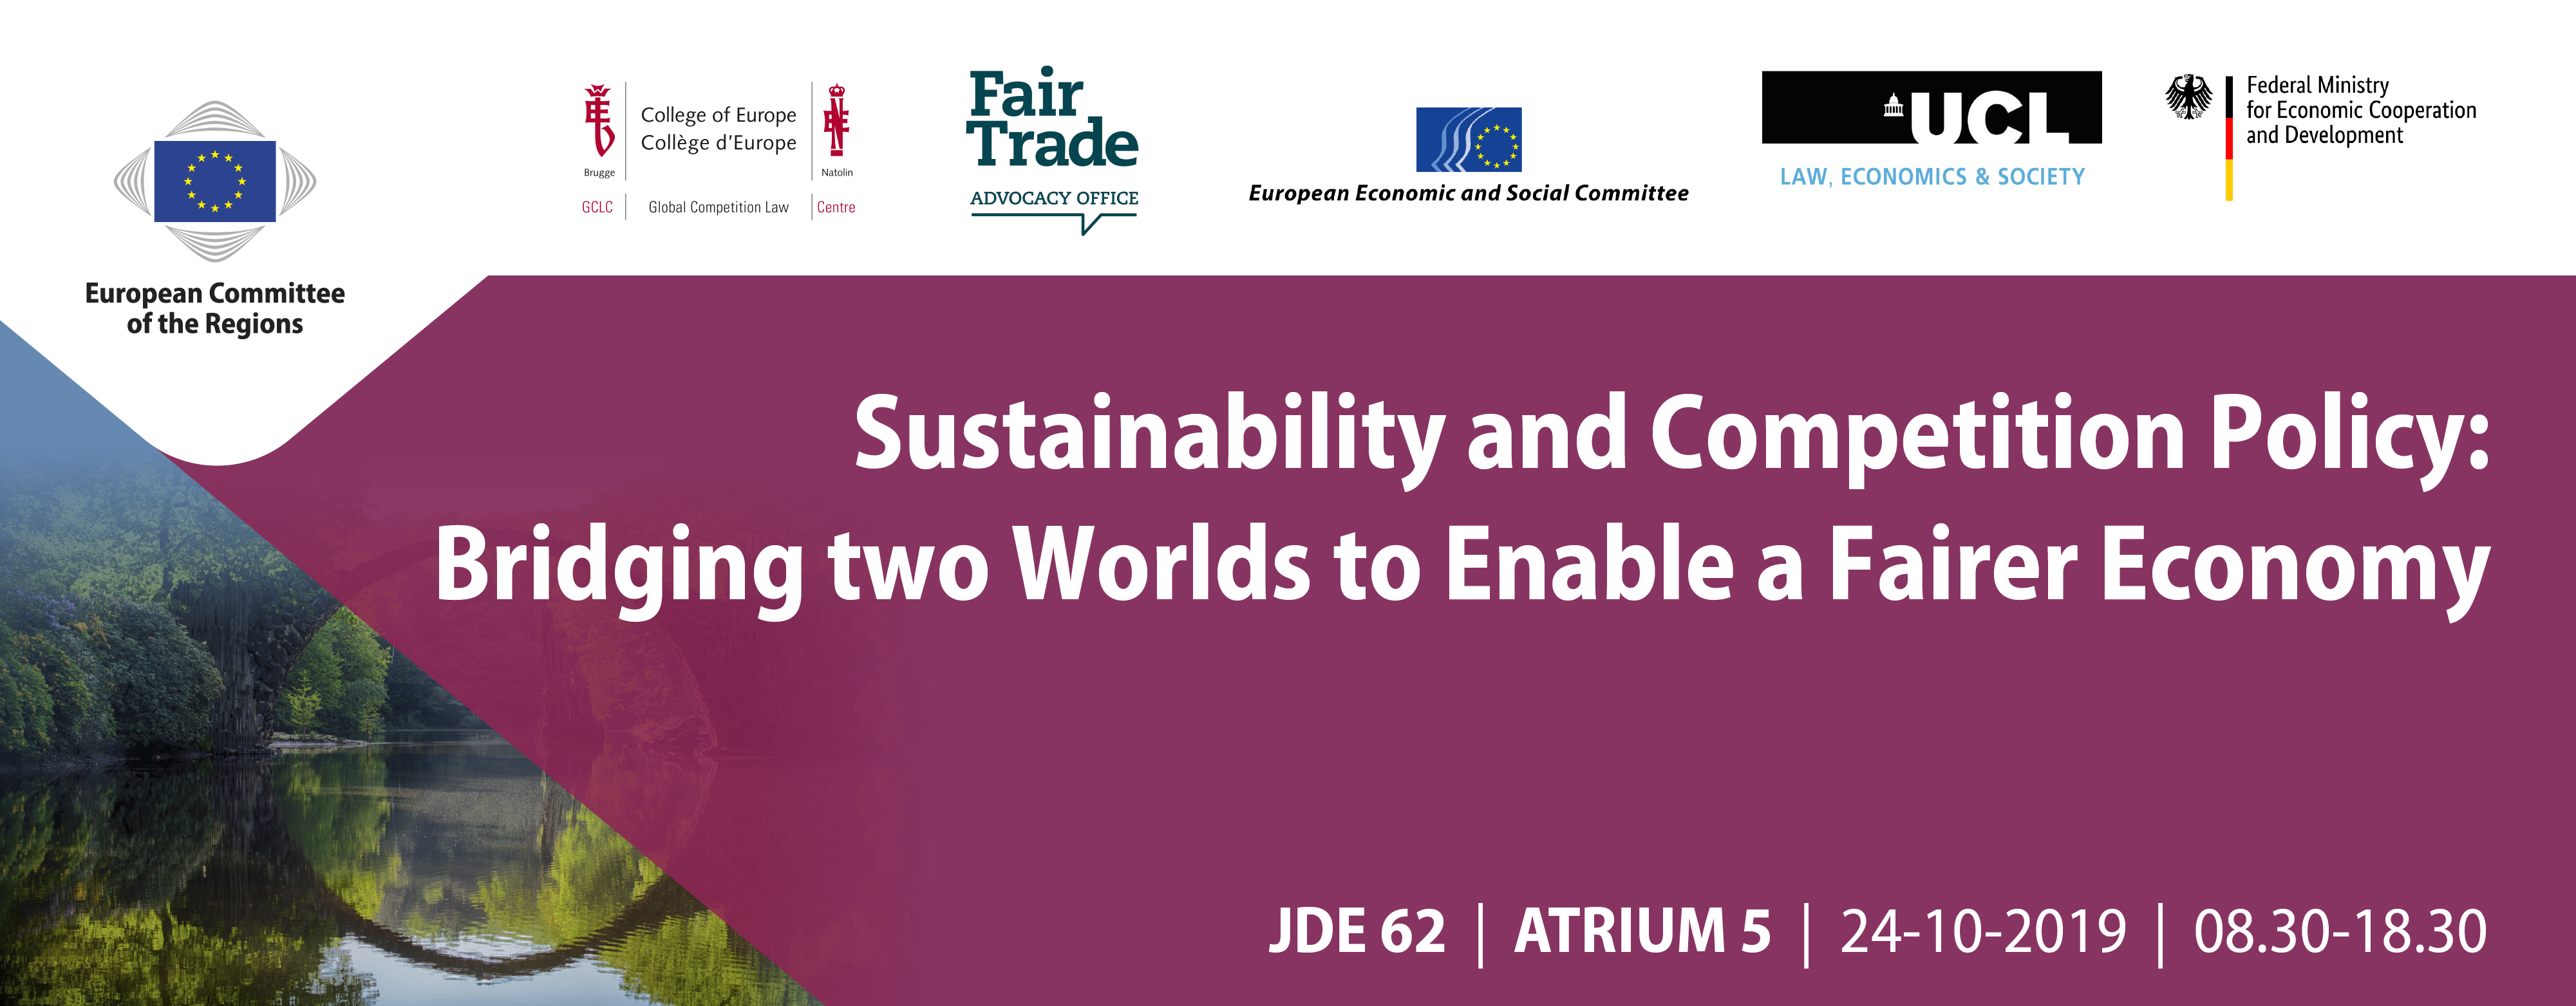 "Conference on ""Sustainability and Competition Policy: Bridging two Worlds to Enable a Fairer Economy"""